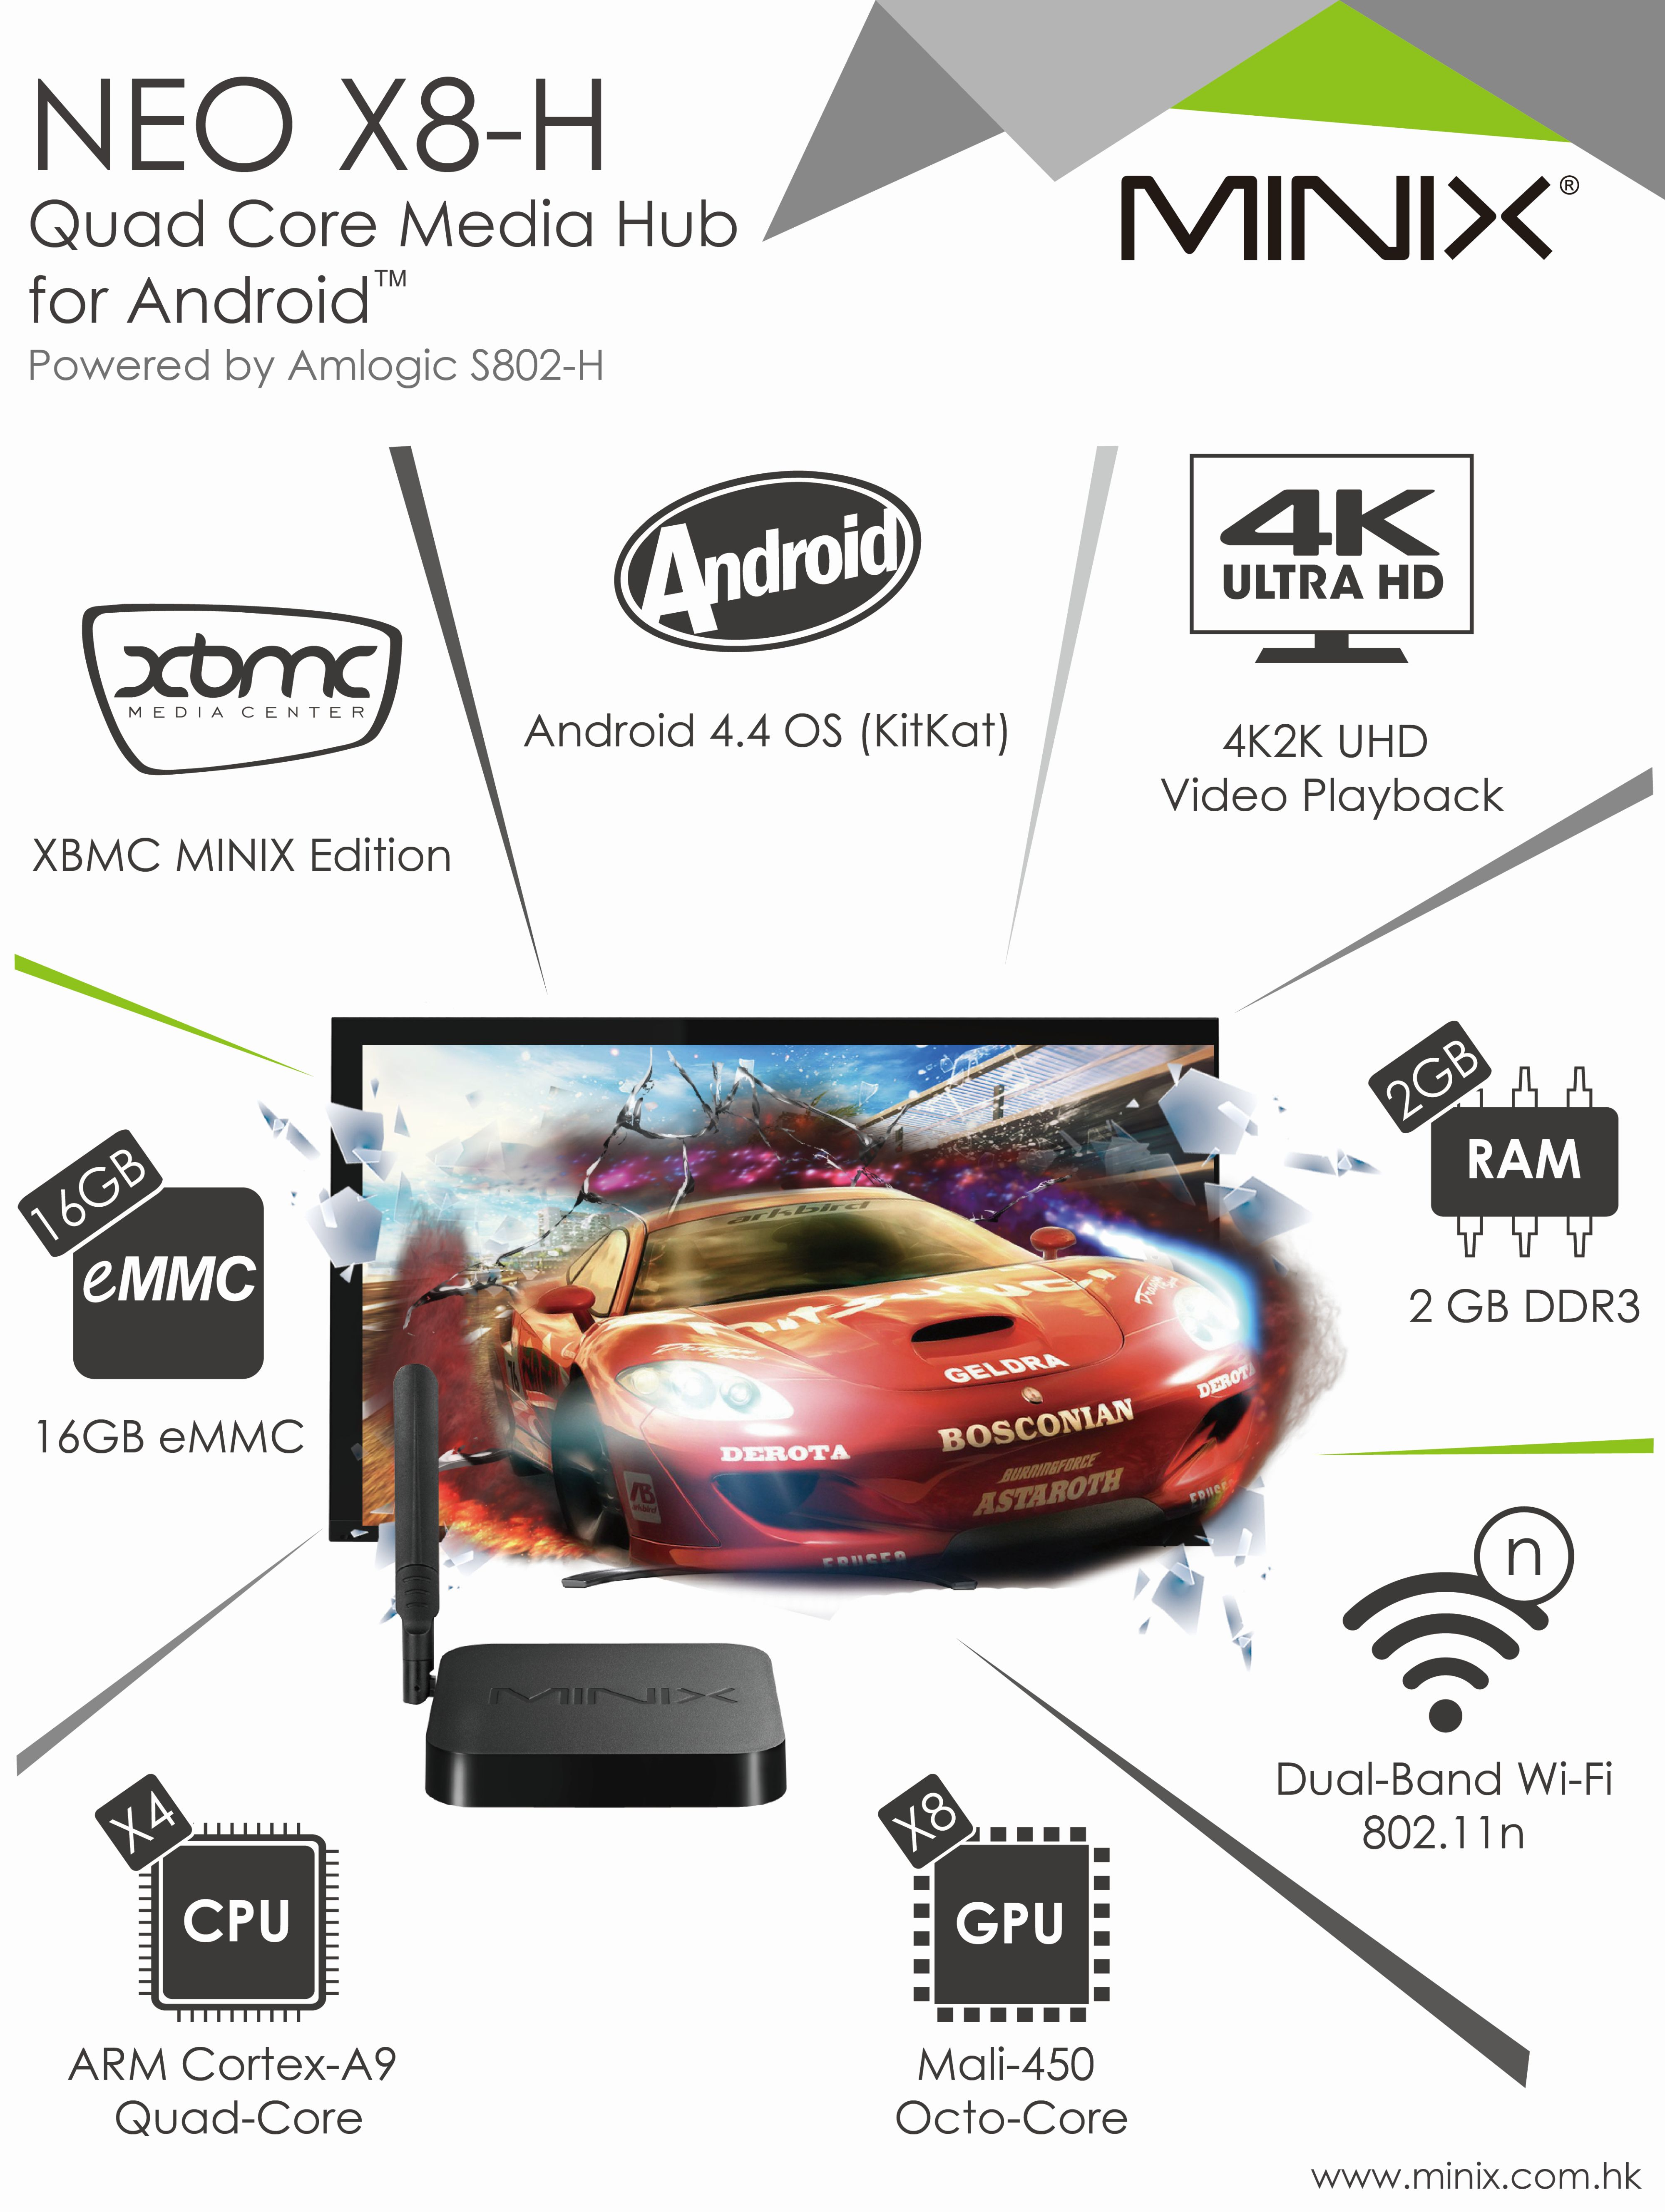 MINIX Neo X8H Brought to you by Amconics Technology, Local Authorized MINIX Distributor, www.myonlinemediaplayer.com